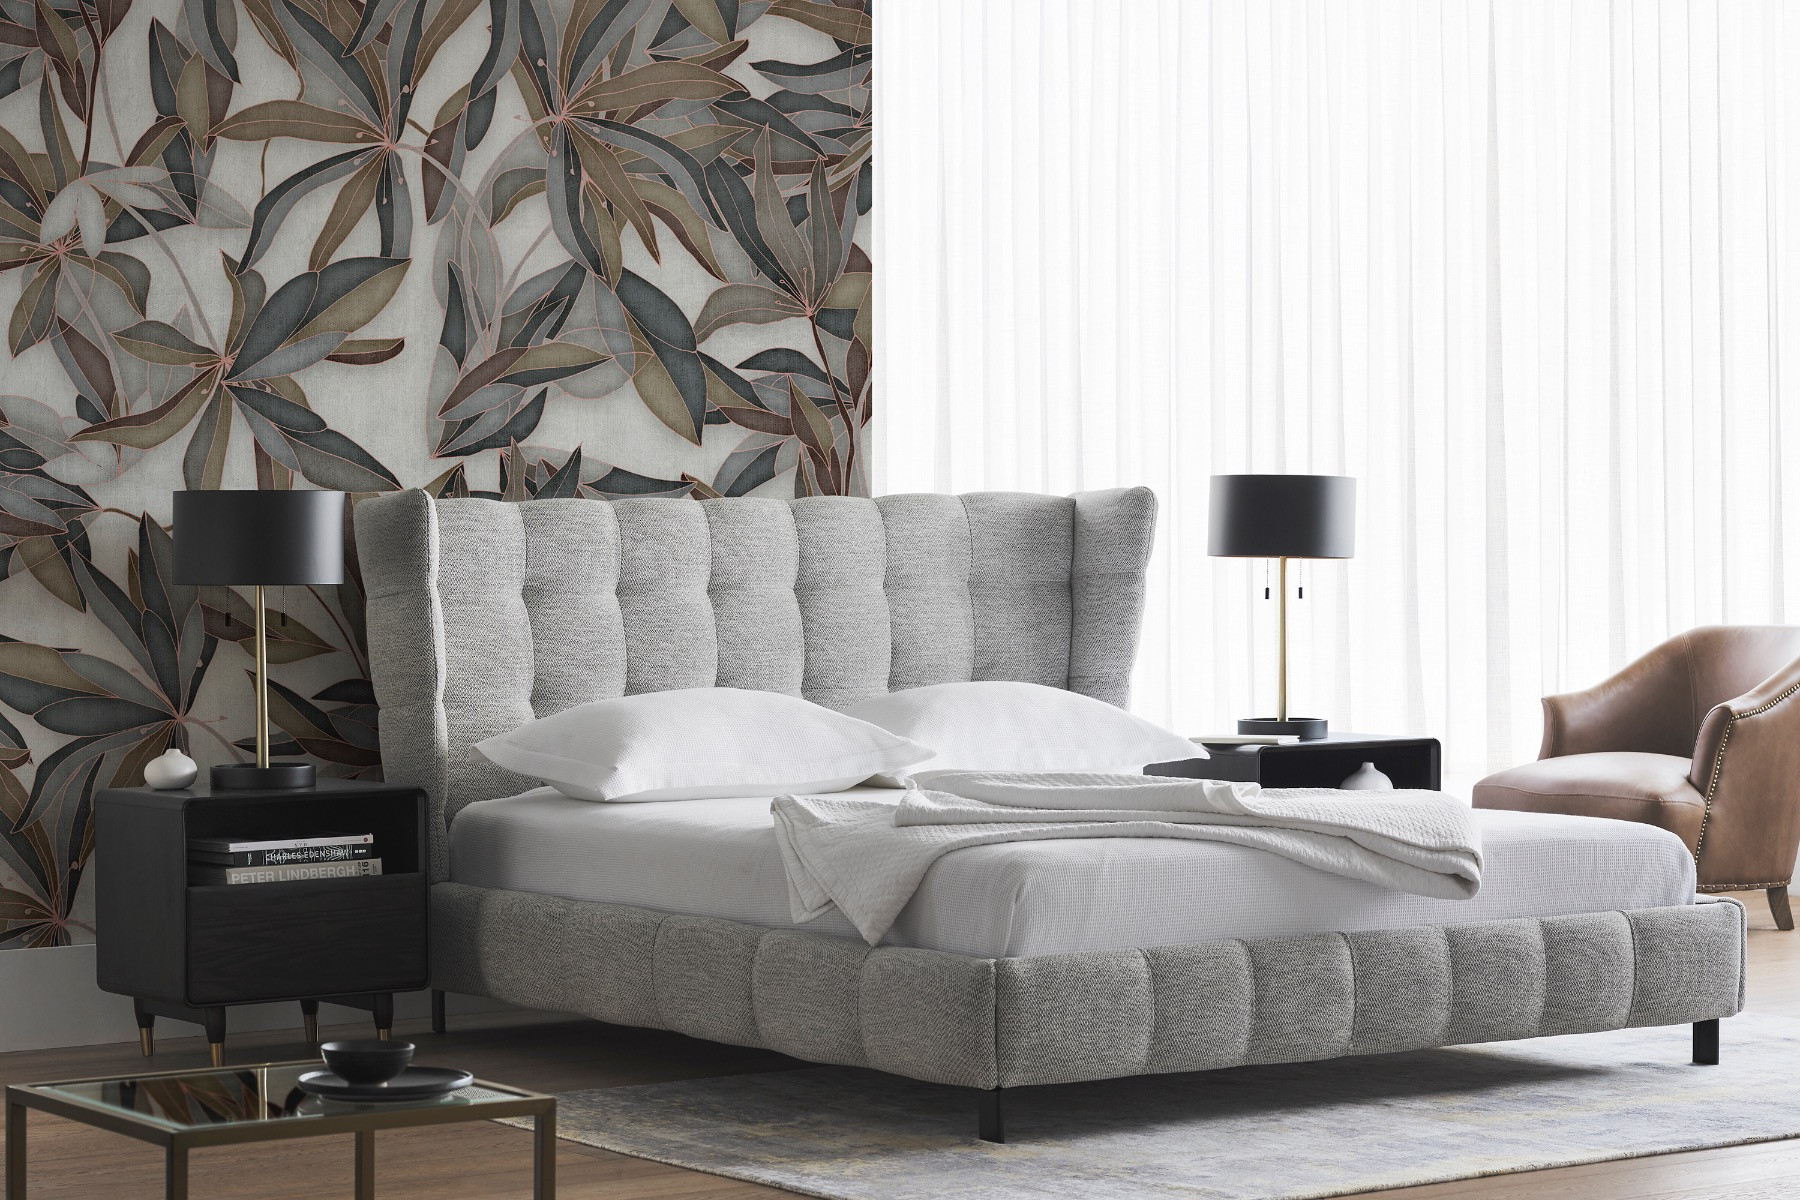 Mario Upholstered Bed With Tufted Headboard Maison Corbeil